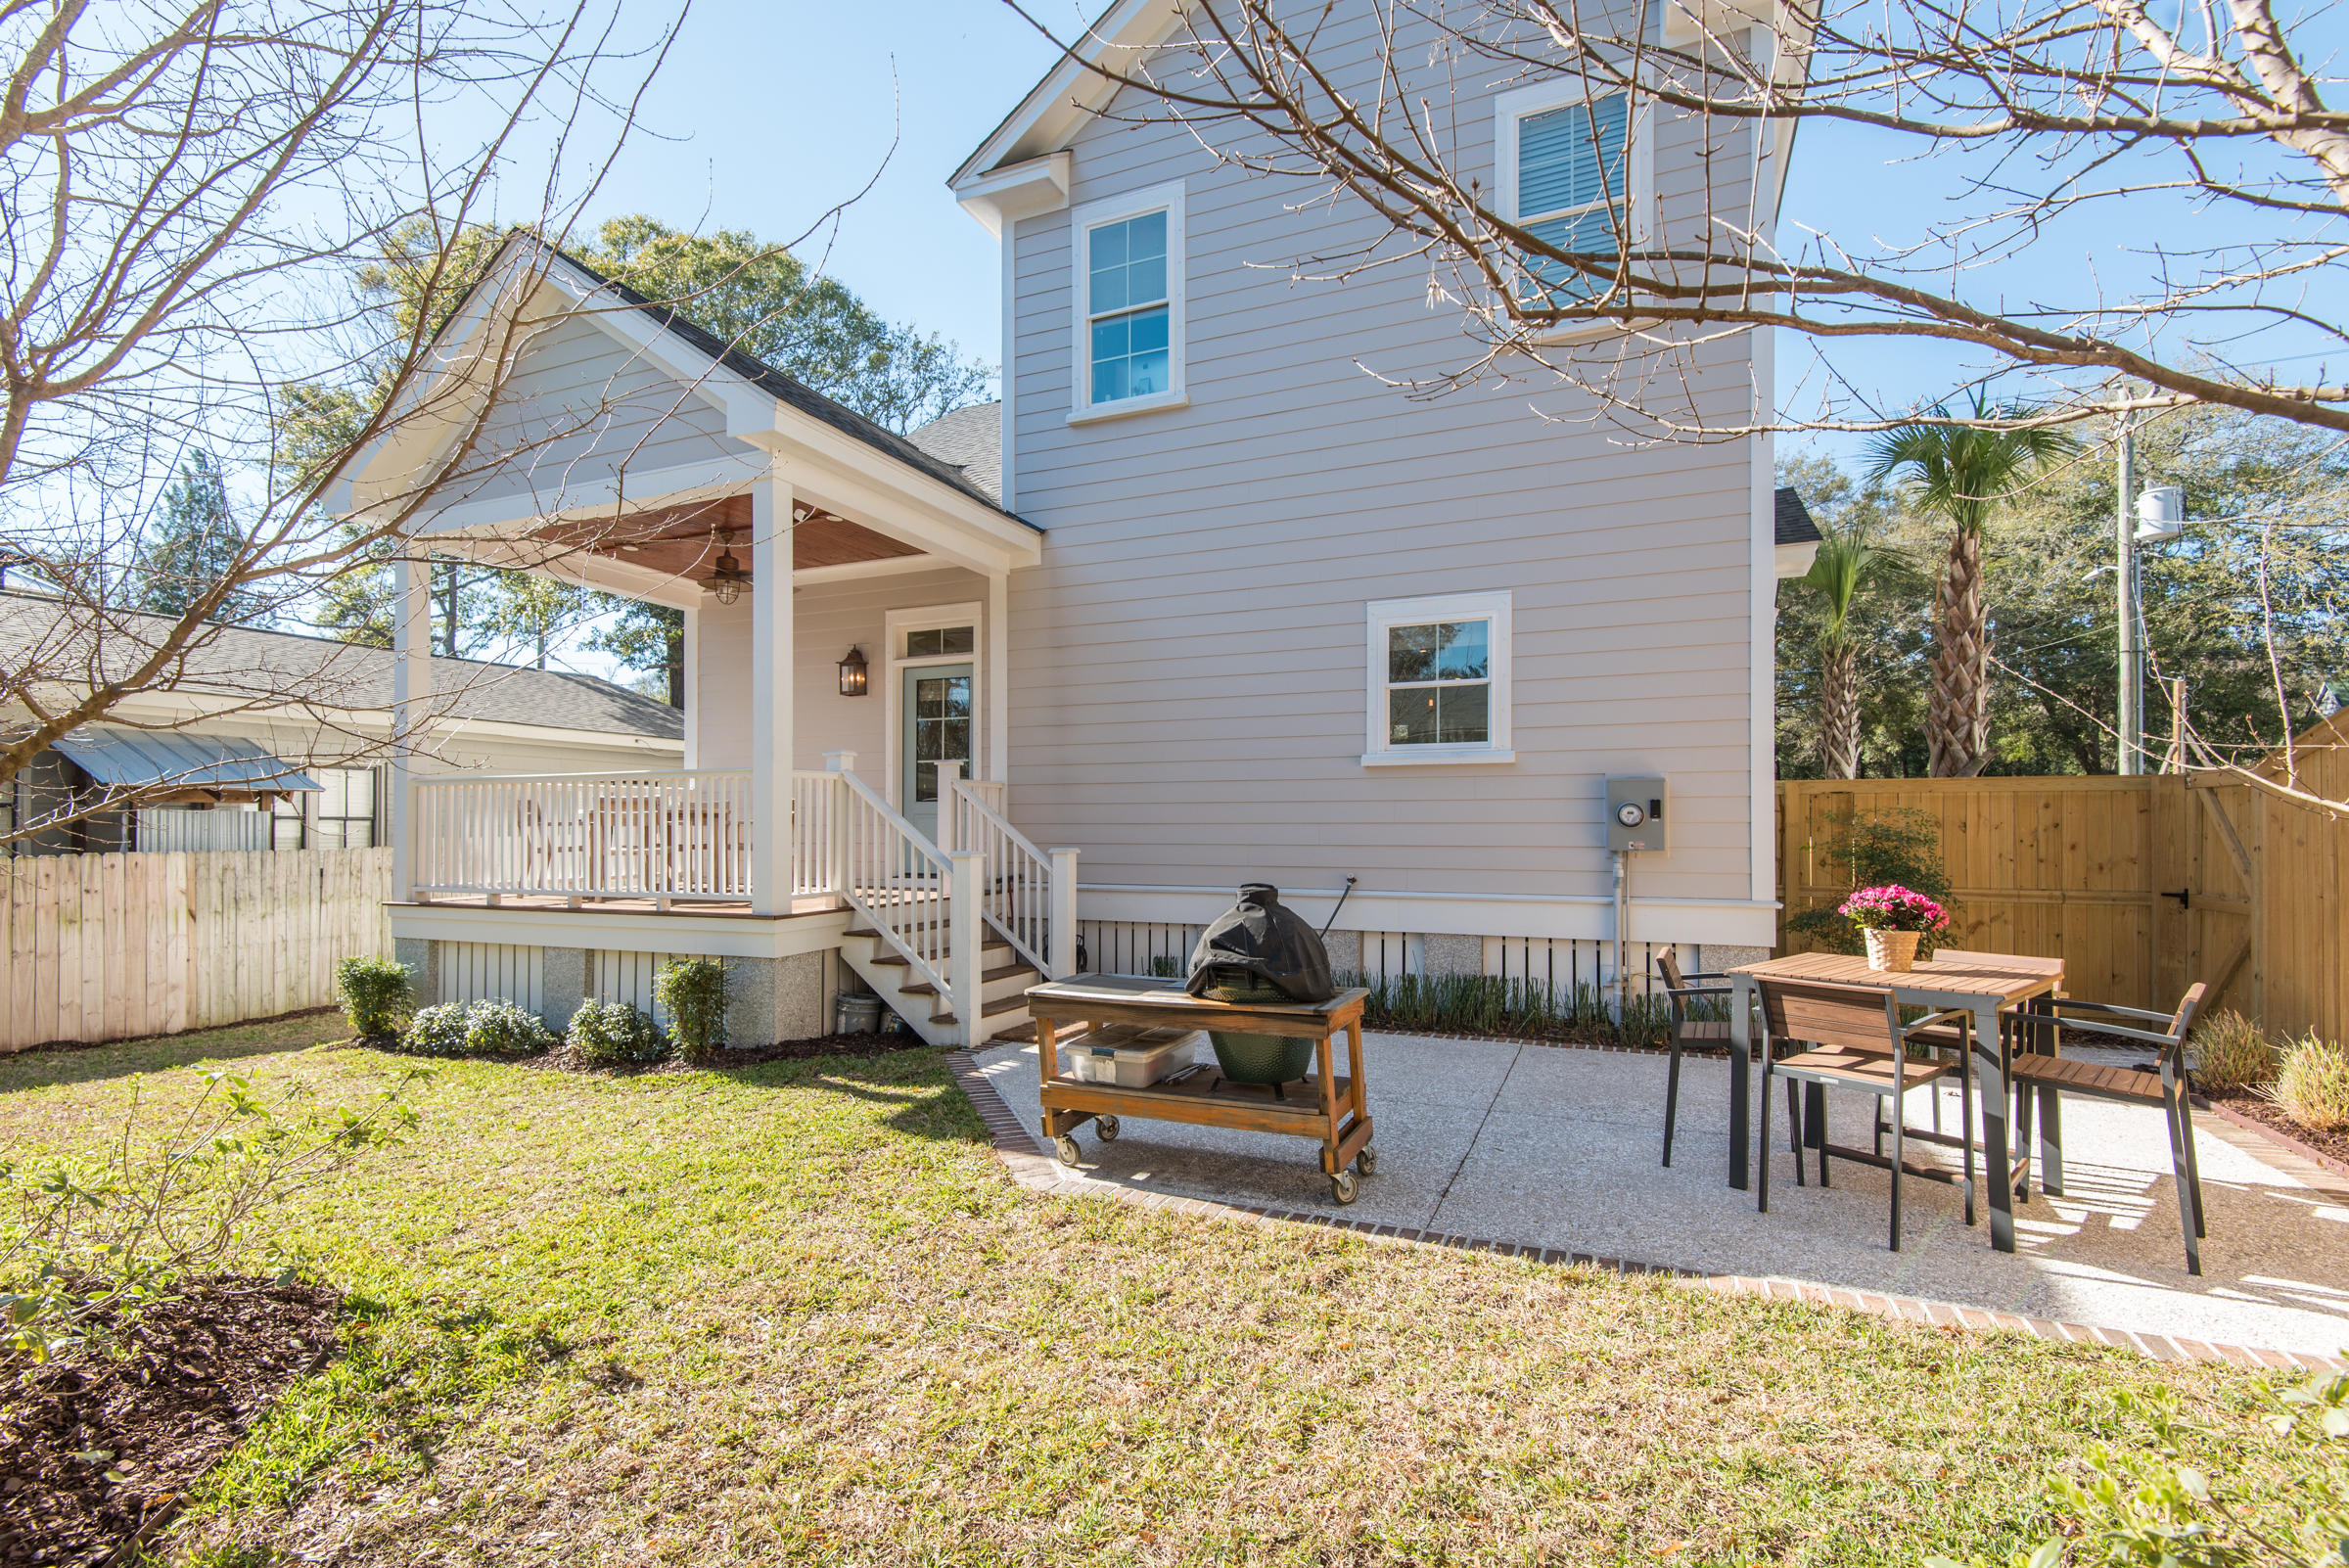 Home for sale 415 King Street, Old Village, Mt. Pleasant, SC